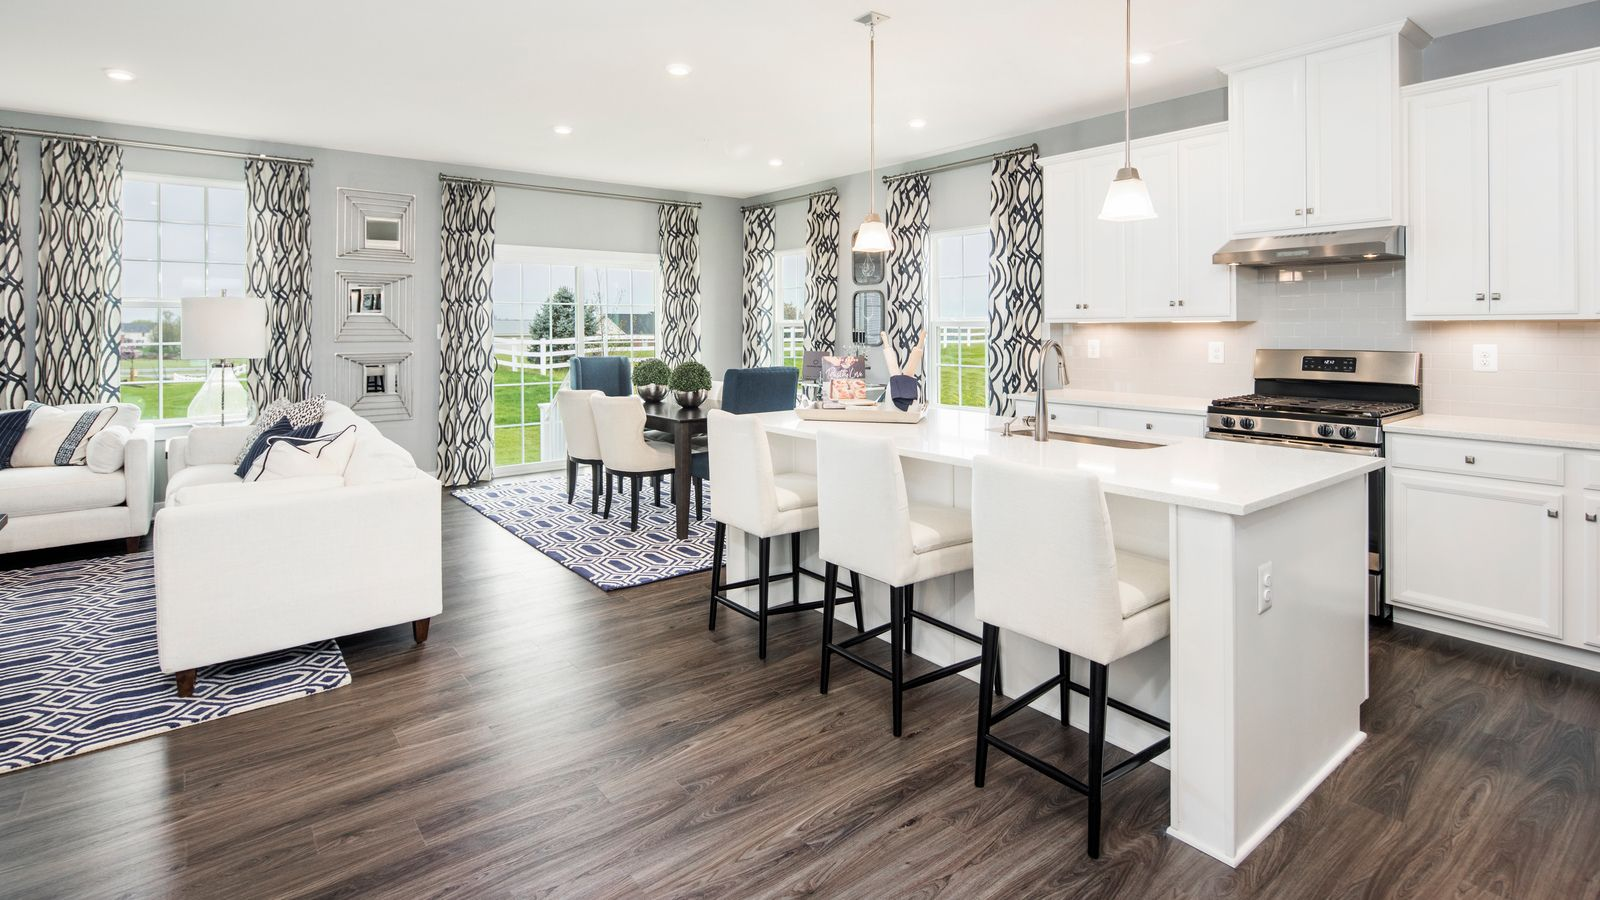 Kitchen featured in the Ashbrooke By Ryan Homes in Cleveland, OH